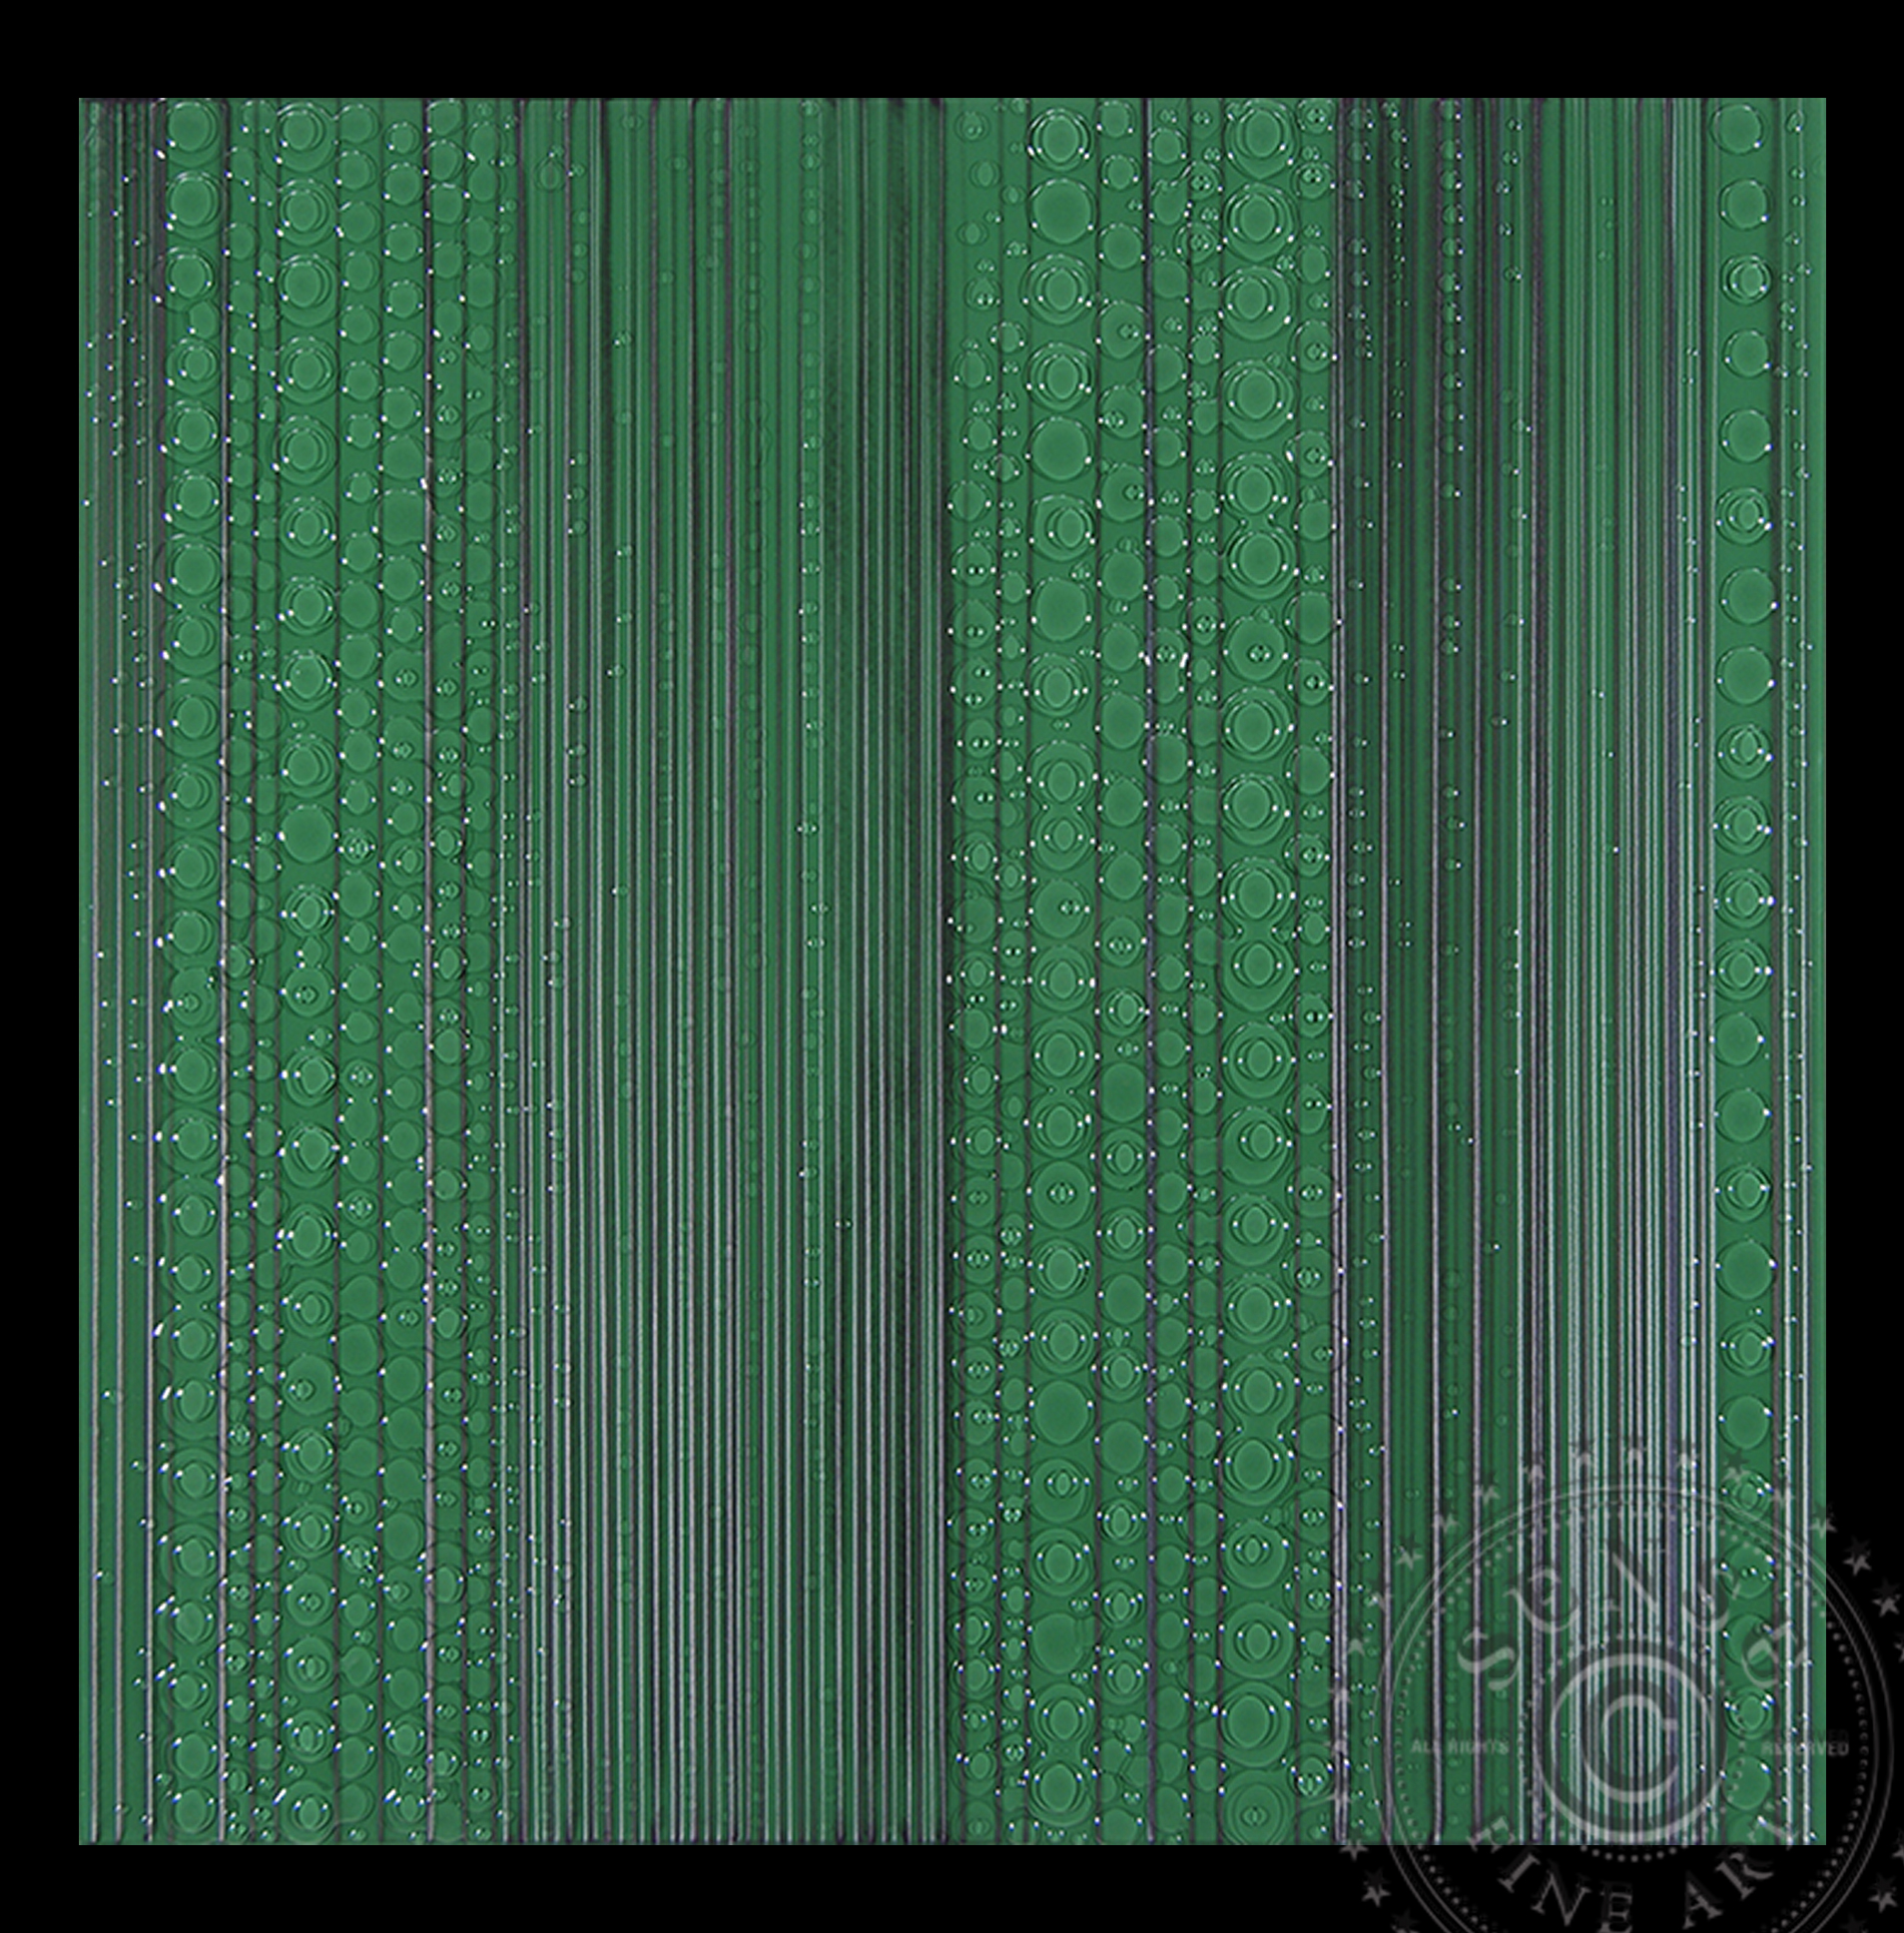 SENSE_fine_art_Kalloch_ForestGreen_24x24in_